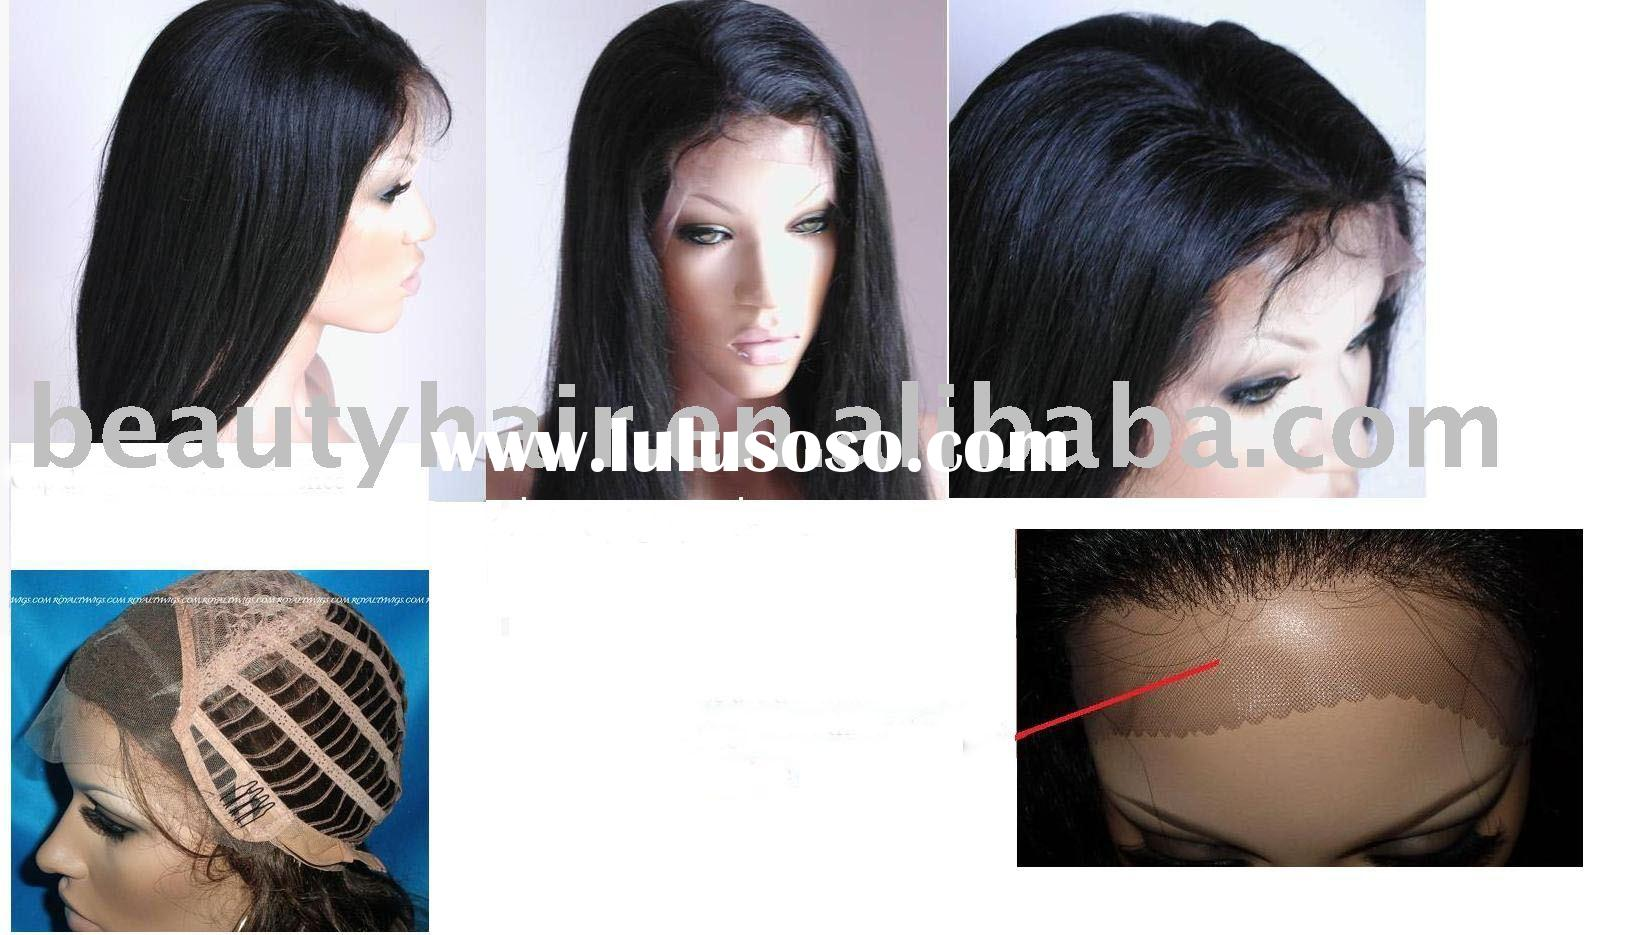 Synthetic lace wigs, lace front wigs